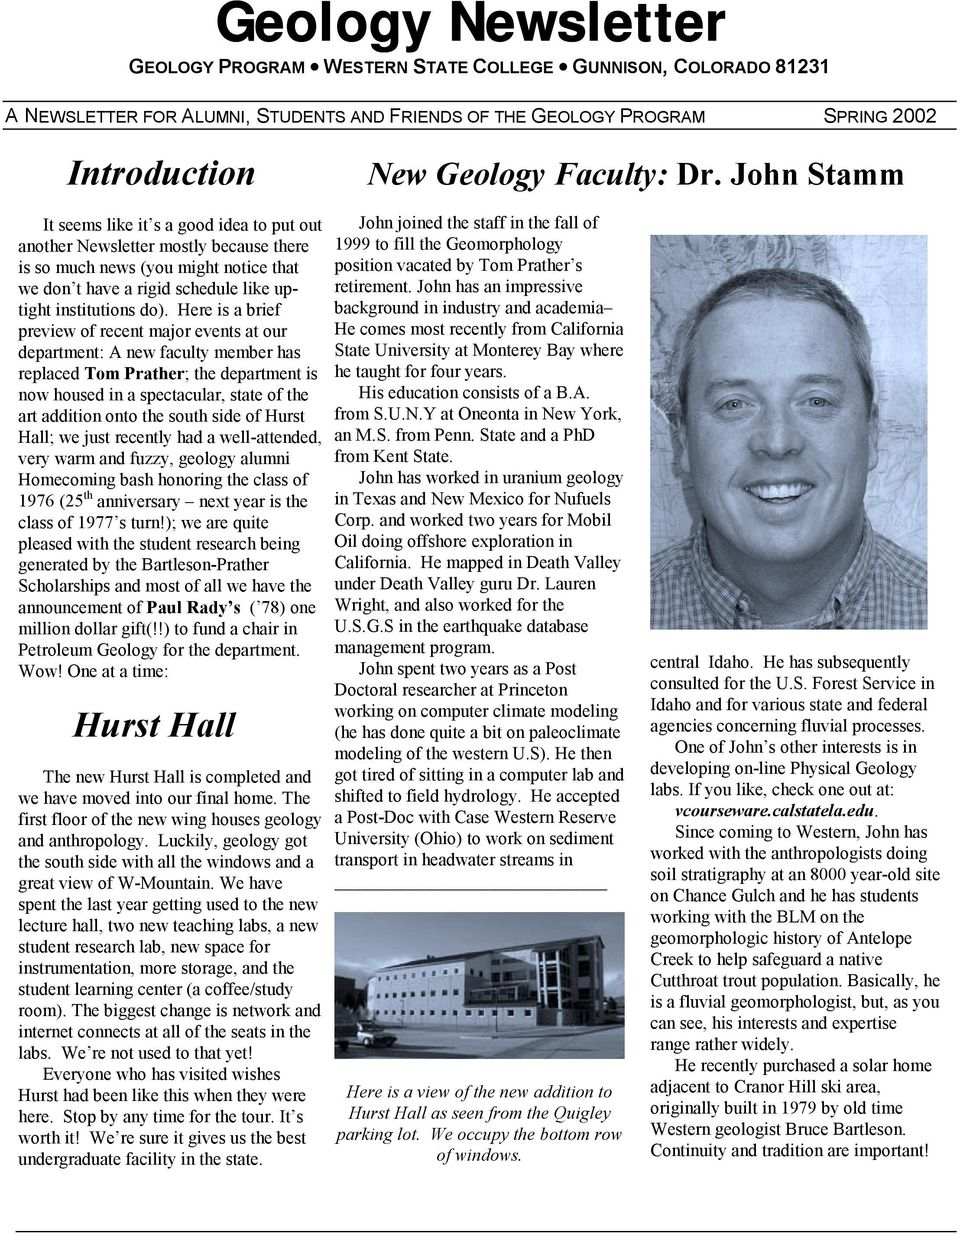 Here is a brief preview of recent major events at our department: A new faculty member has replaced Tom Prather; the department is now housed in a spectacular, state of the art addition onto the